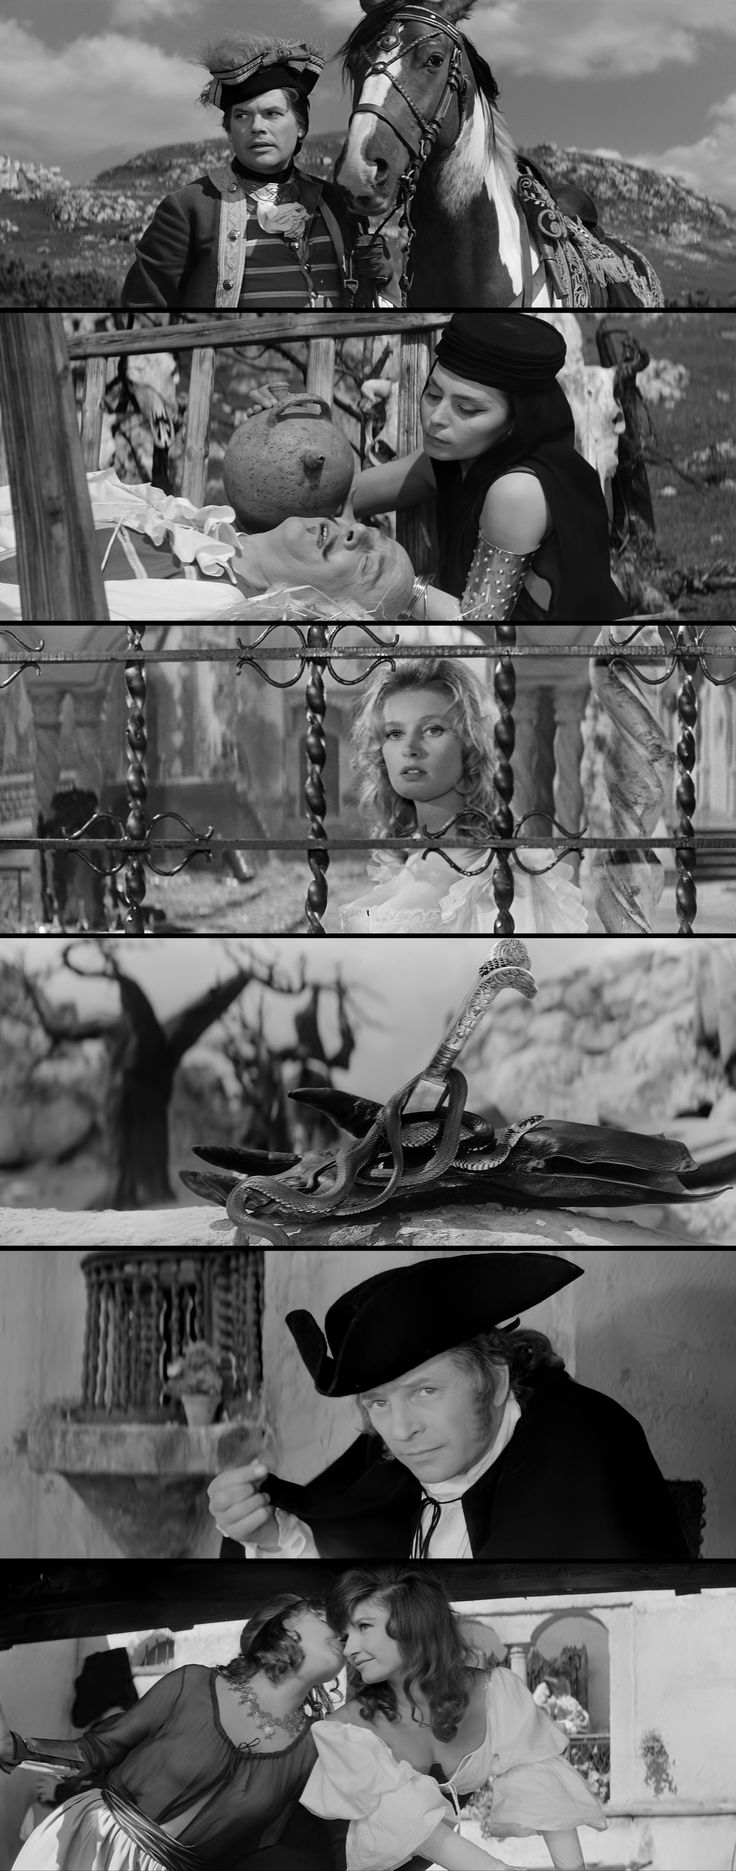 The Saragossa Manuscript (Wojciech Has, 1965) - Upon finding a book that relates his grandfather's story, an officer, Alfonse Van Worden (played by Zbigniew Cybulski, top), ventures through Spain meeting a wide array of characters, most of whom have a story of their own to tell.